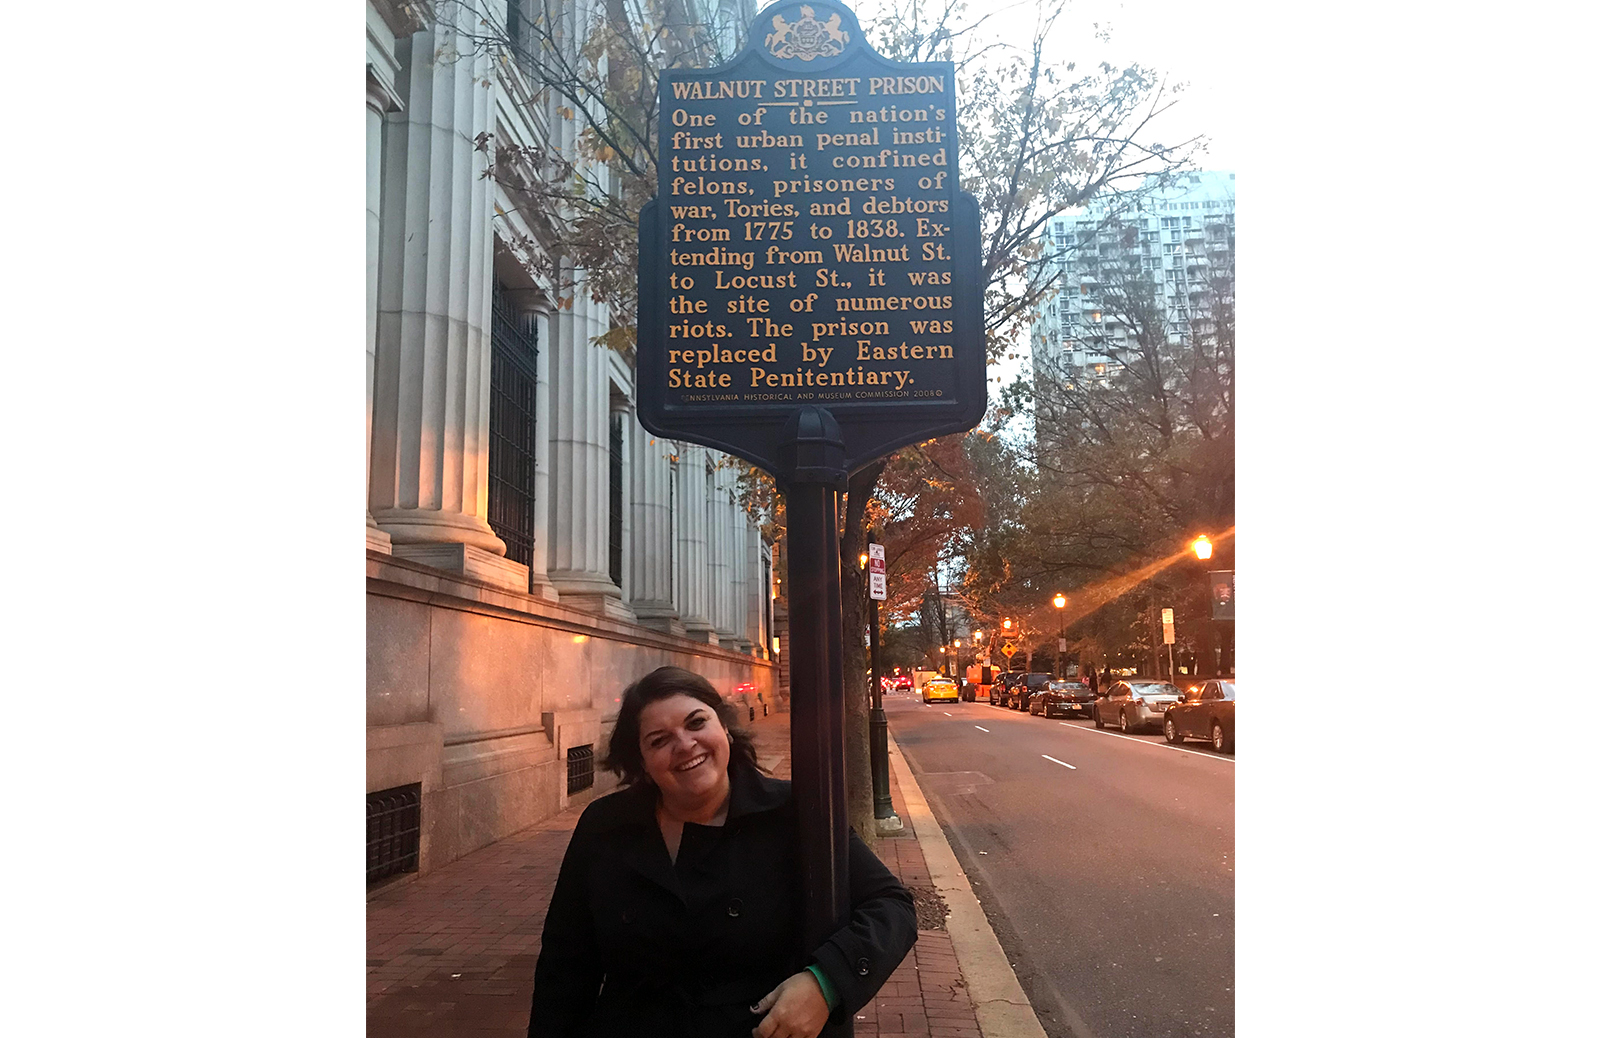 Questioner Andrea Krieg at the site of the Walnut Street Prison, a city jail and penitentiary house in Philadelphia, Pennsylvania from 1773 to 1838. (Courtesy Andrea Krieg)